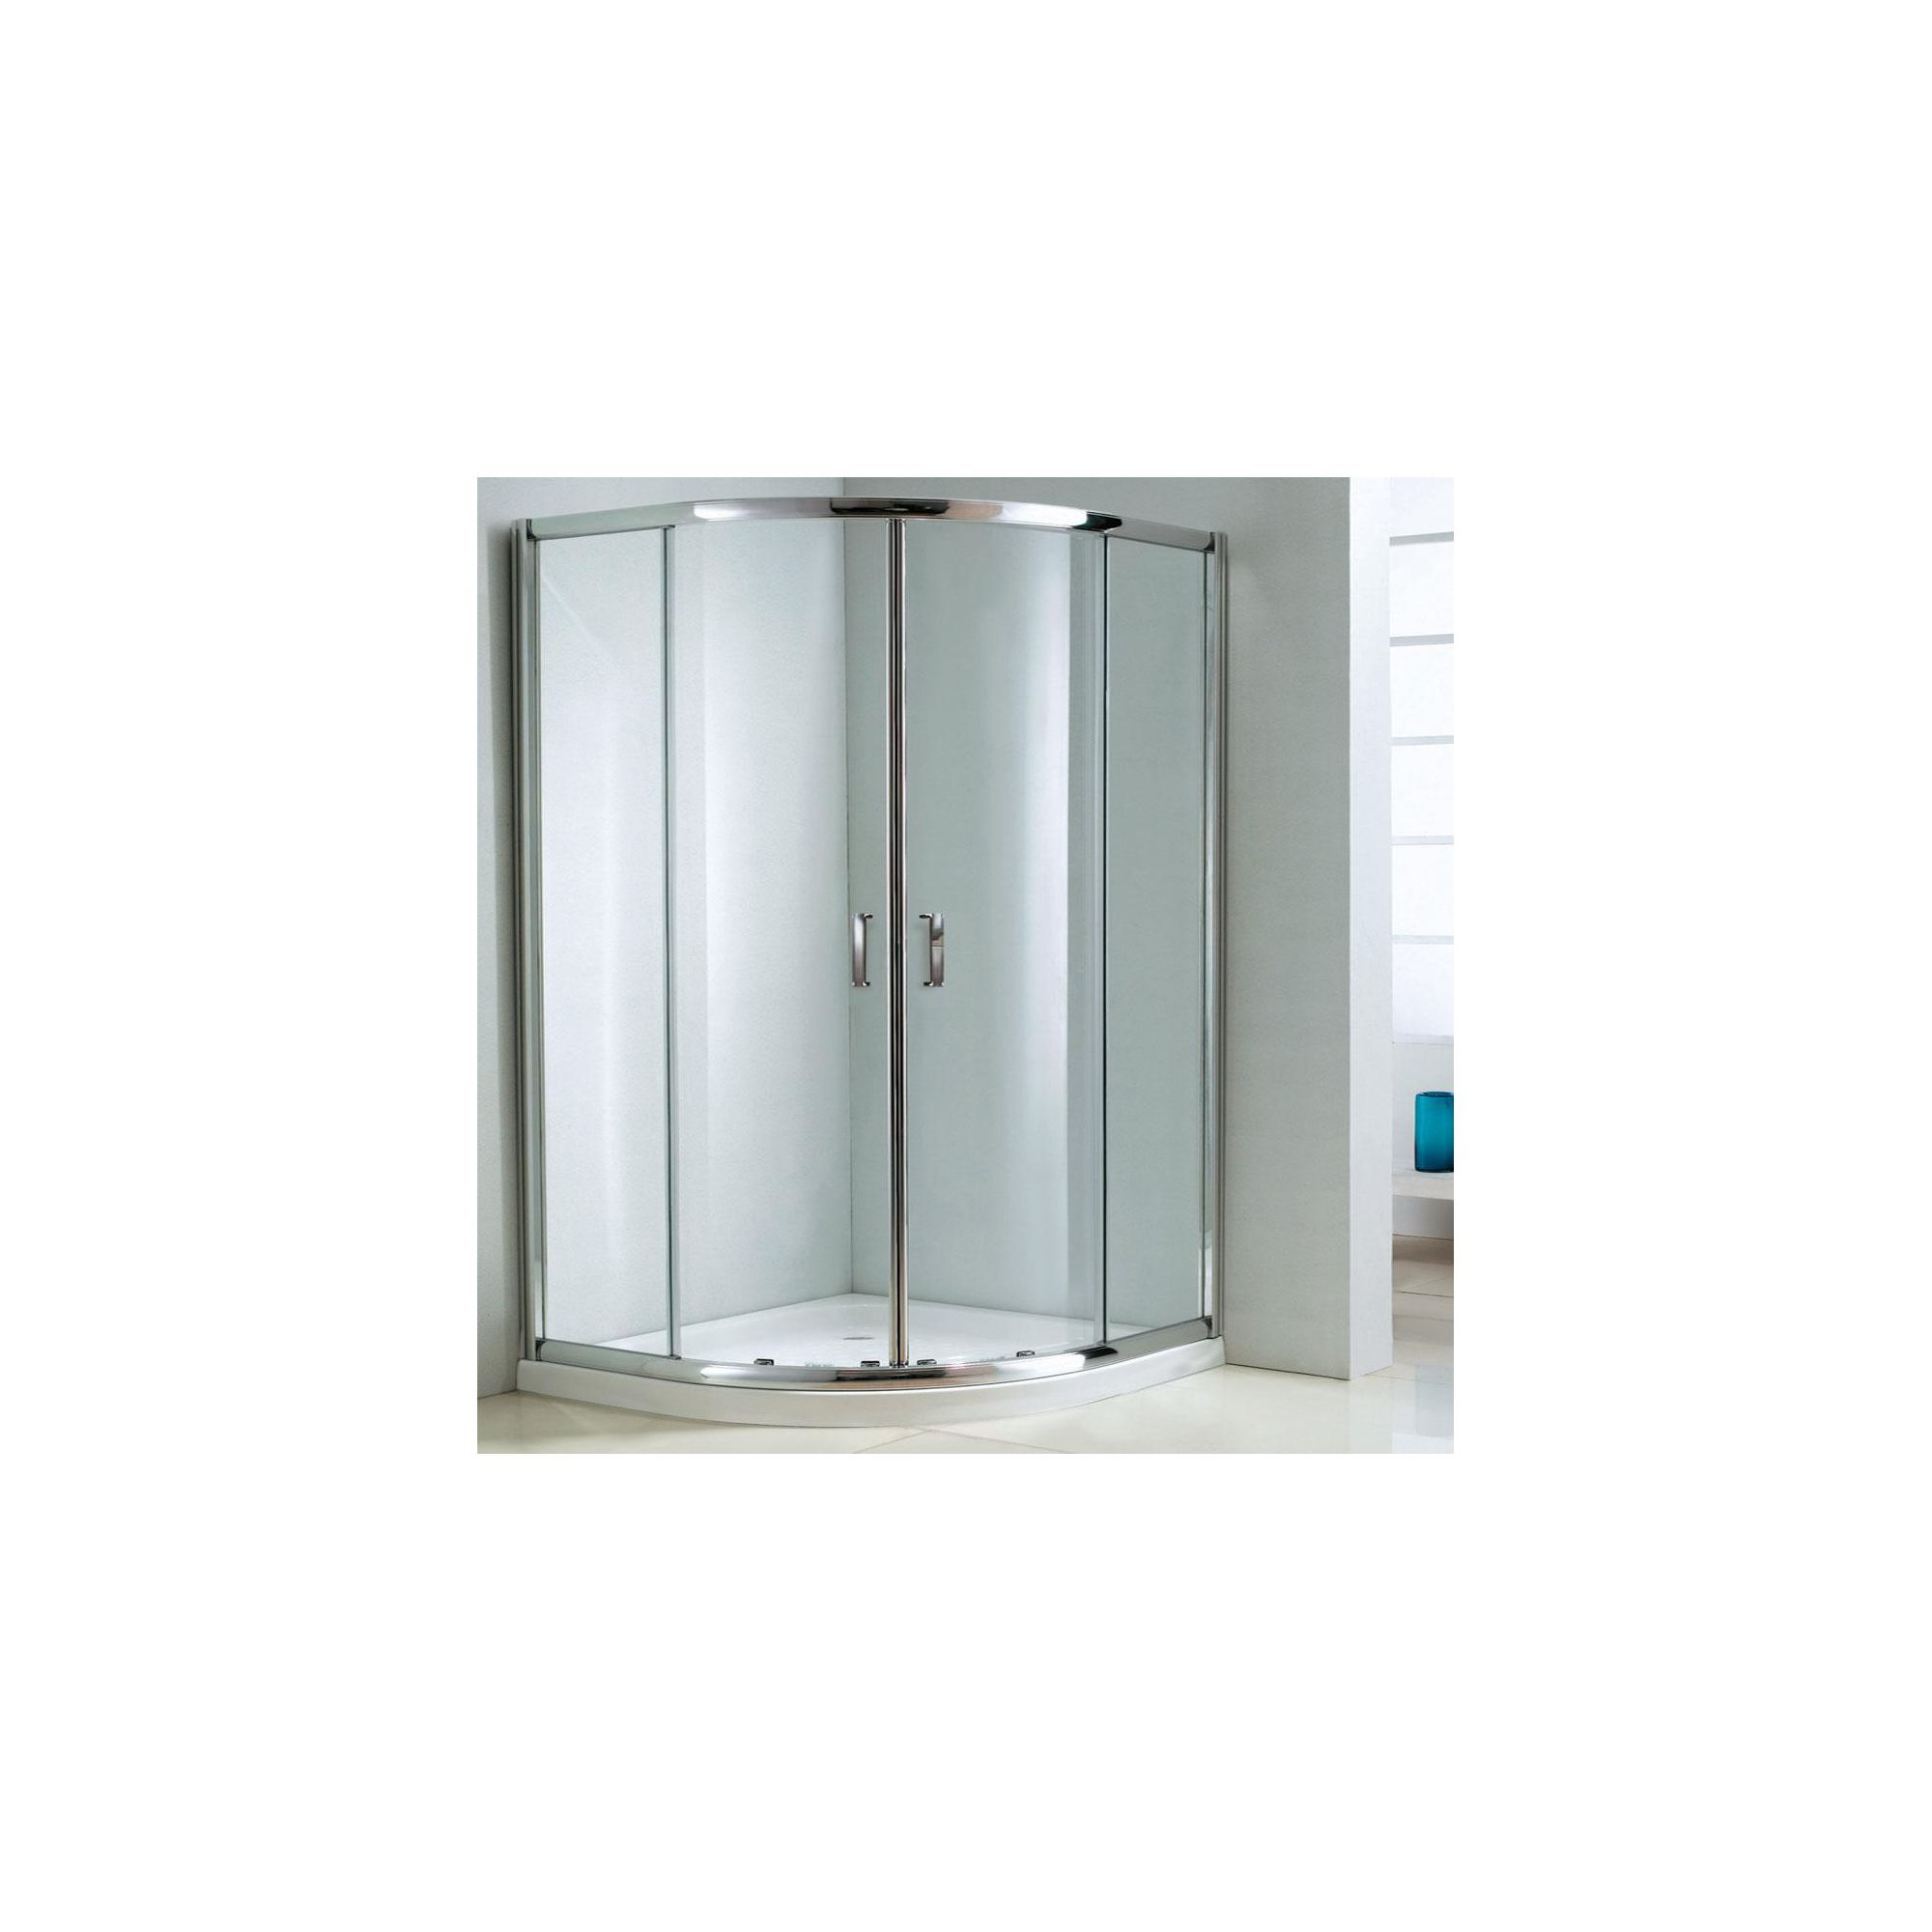 Duchy Style Double Offset Quadrant Shower Door, 900mm x 800mm, 6mm Glass at Tesco Direct